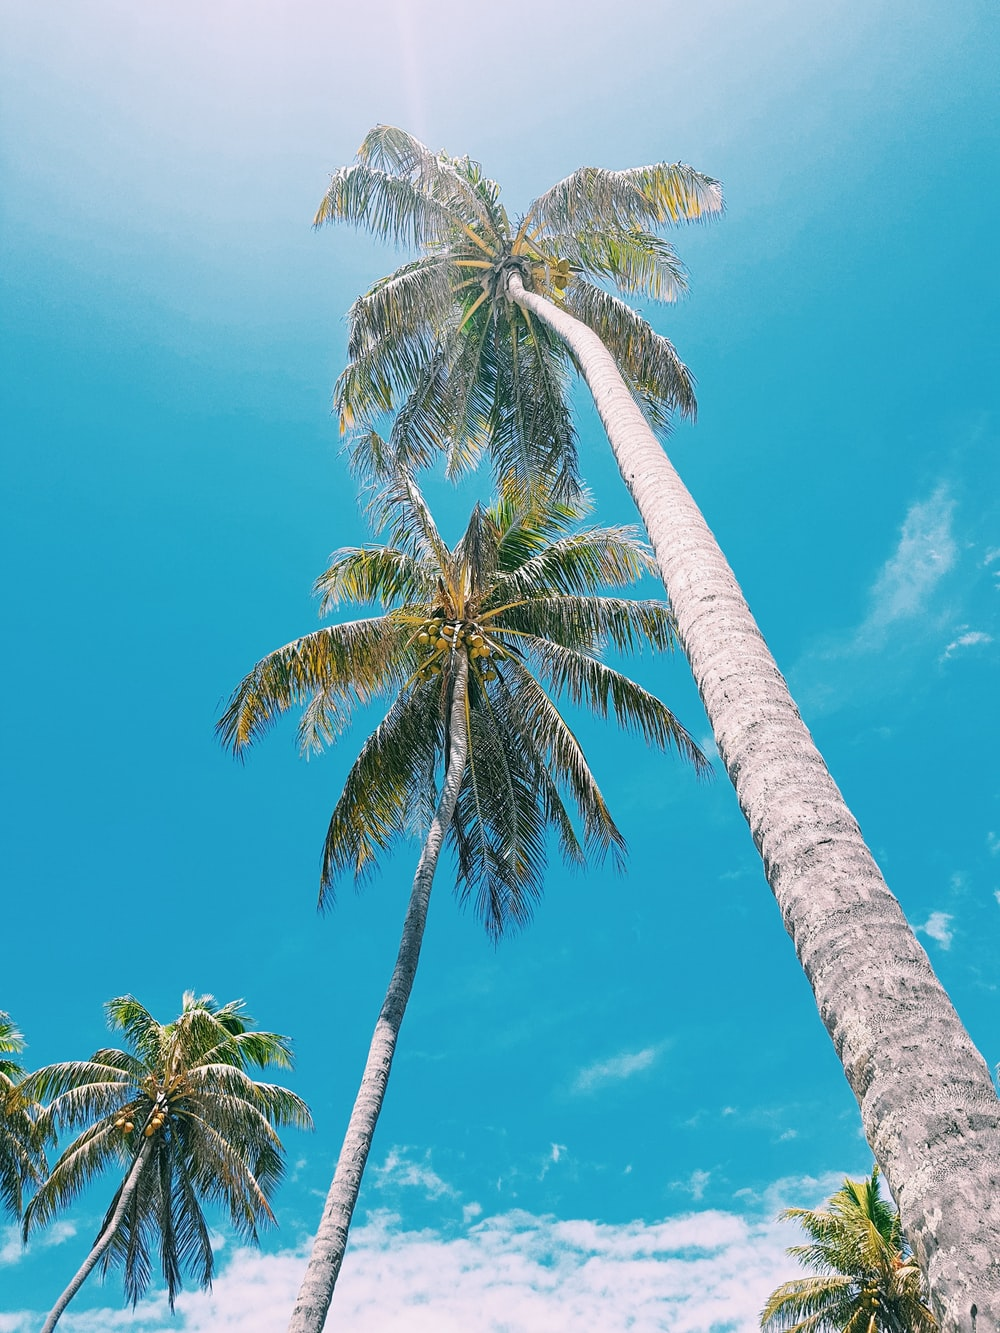 low angle photo of palm tree under clear blue sky